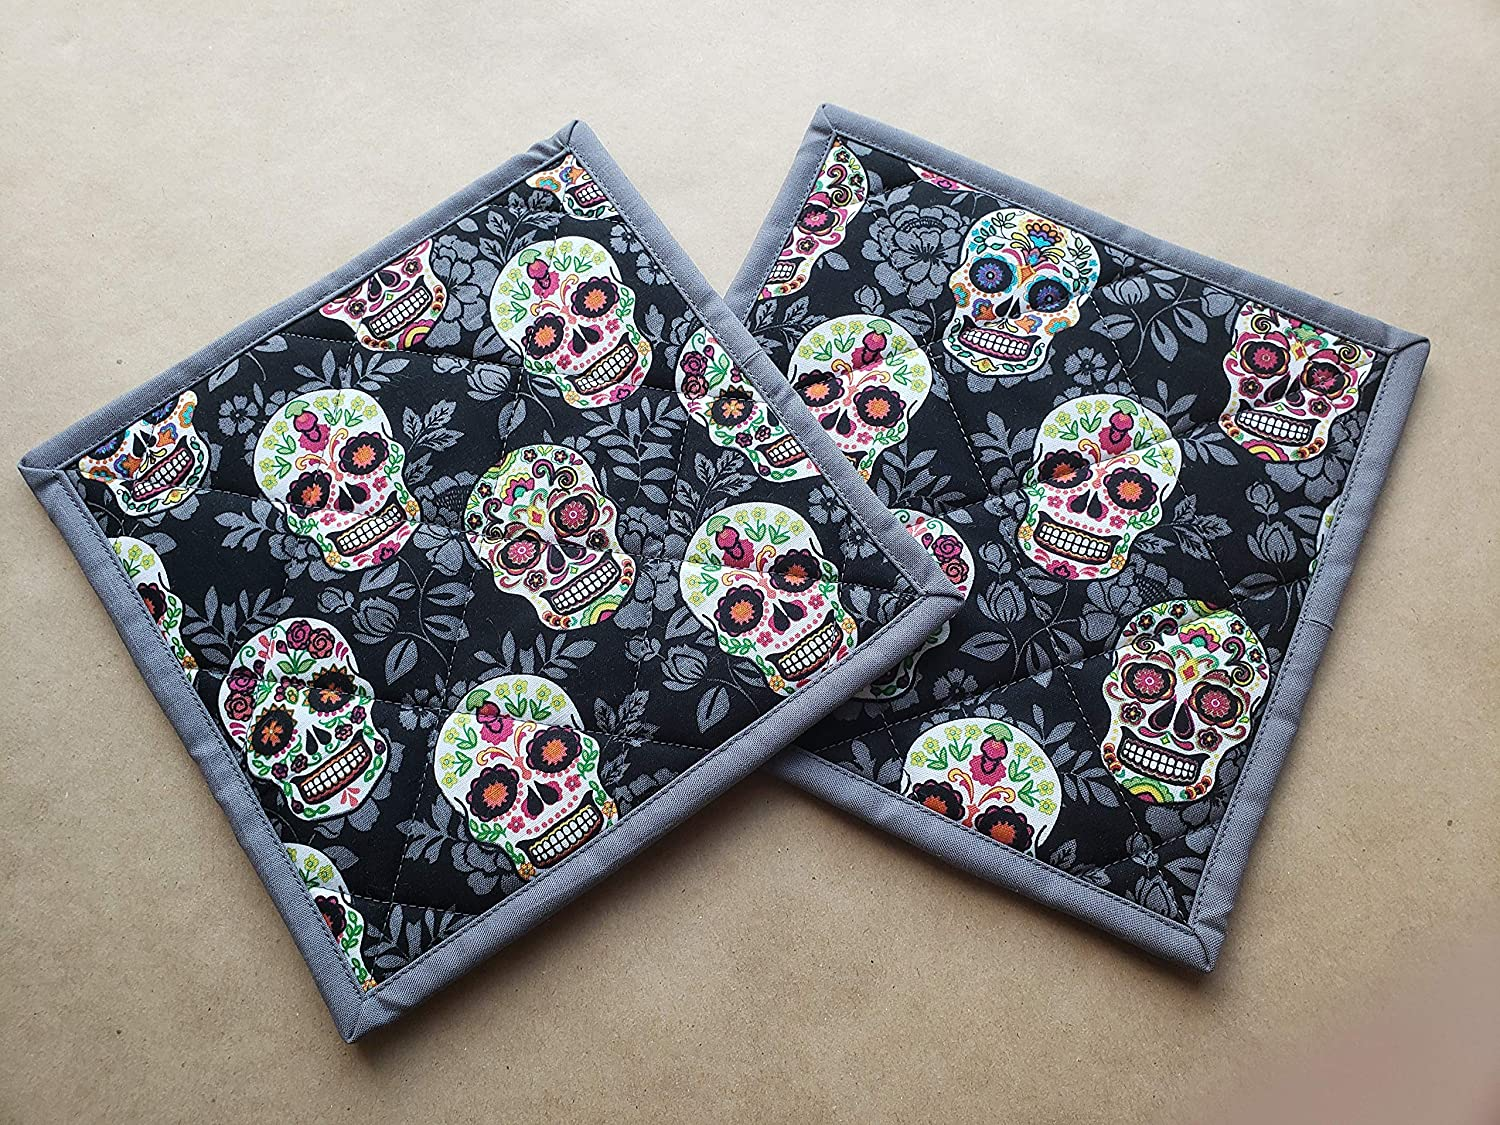 Sugar Skull Themed Potholders Set of 2, Pair Día de Muertos Kitchen Linens, Day of the Dead Home Decor Quilted Hot Pads, Insulated Trivets, Black Grey Halloween Gifts Under 20 Handmade